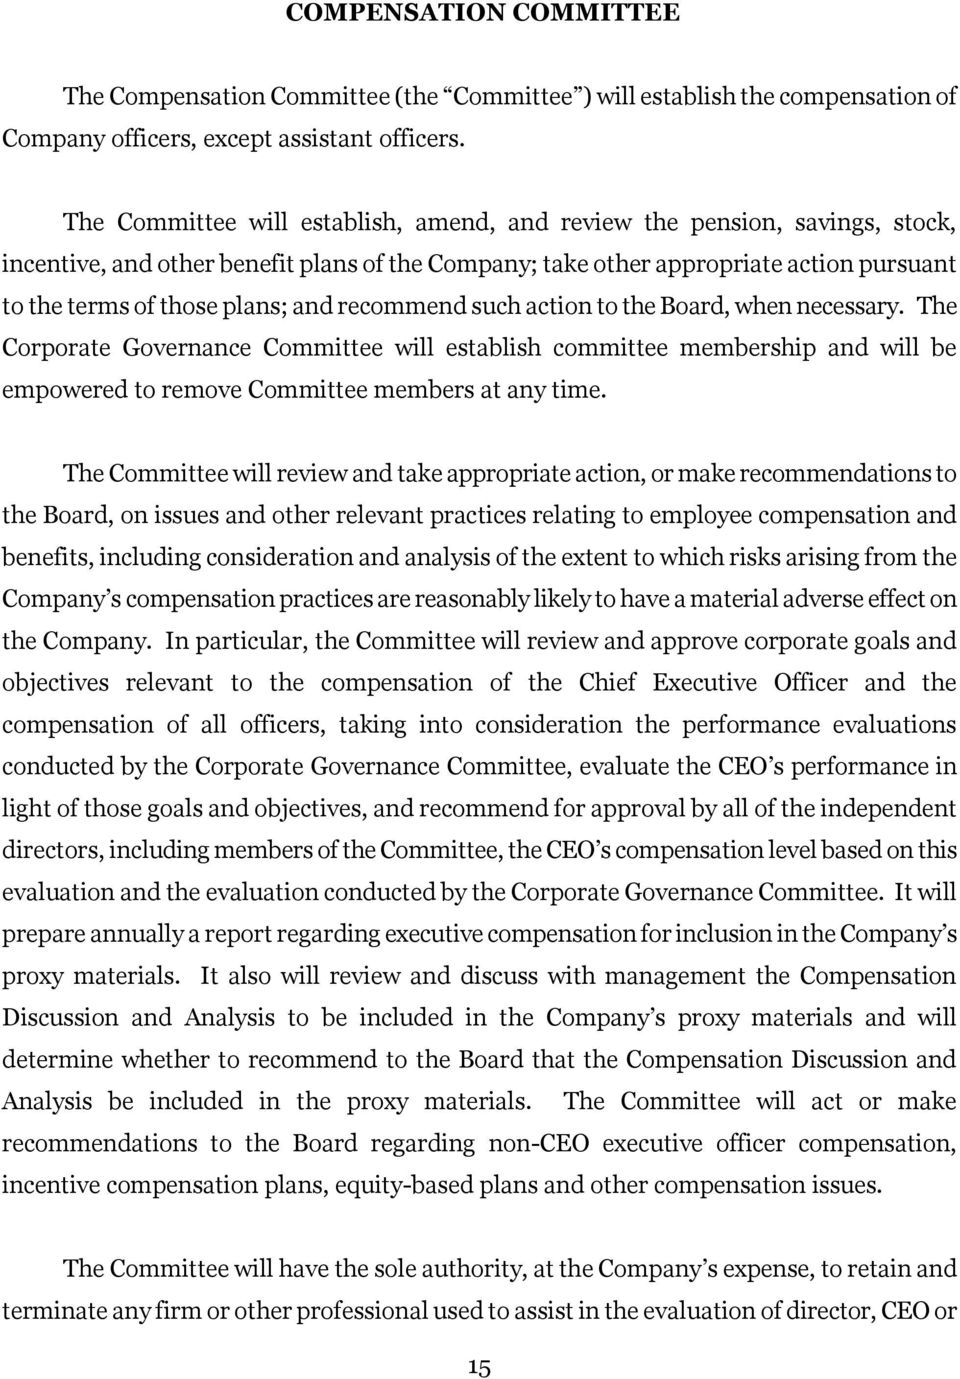 recommend such action to the Board, when necessary. The Corporate Governance Committee will establish committee membership and will be empowered to remove Committee members at any time.